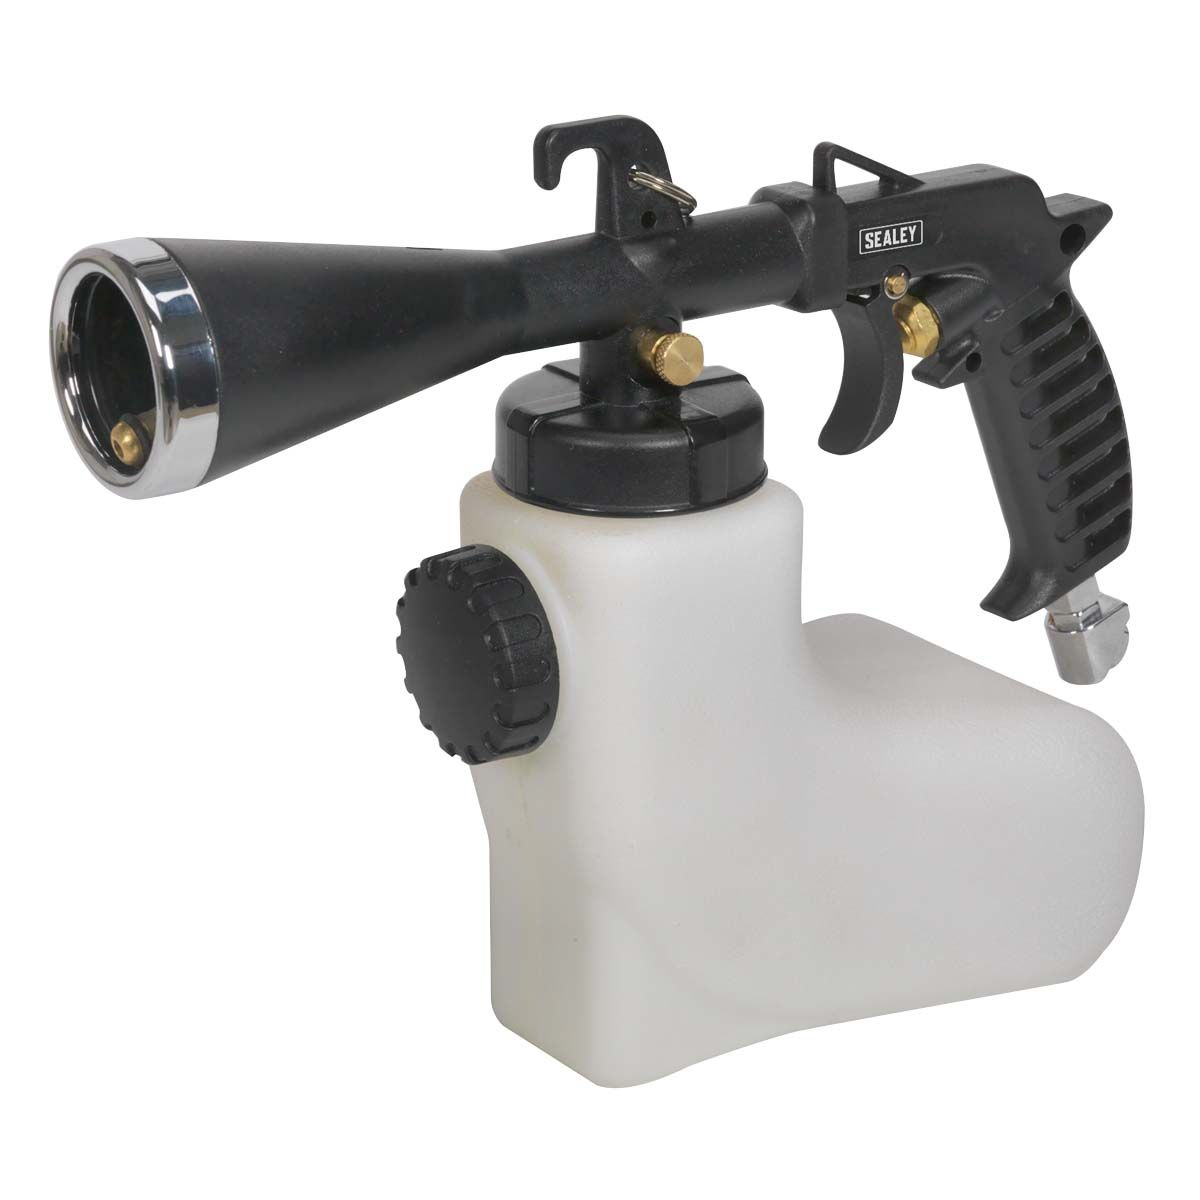 Sealey Upholstery/Body Cleaning Gun